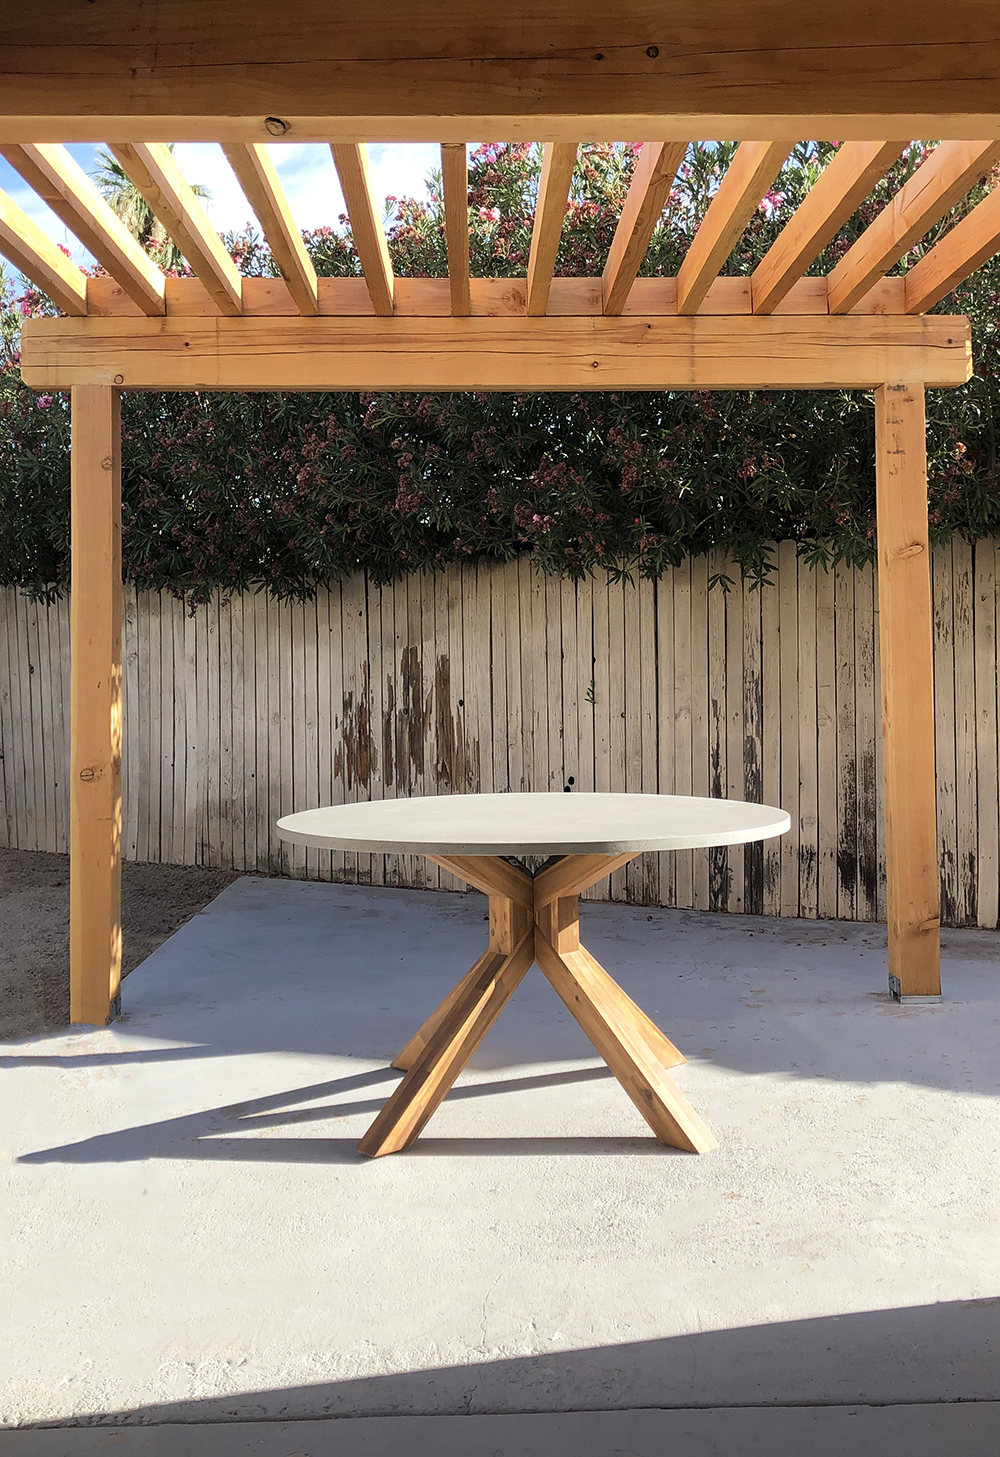 Round Table Outdoor Dining Options - roomfortuesday.com